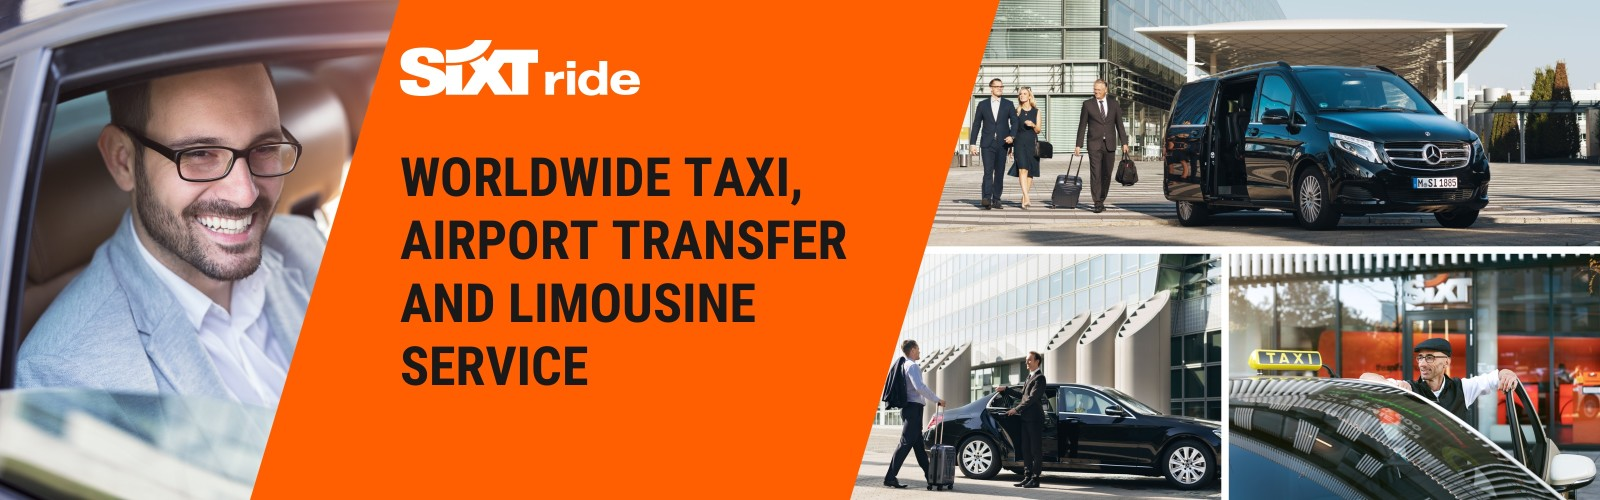 70bd3fc2189549 Travel with SIXT worldwide